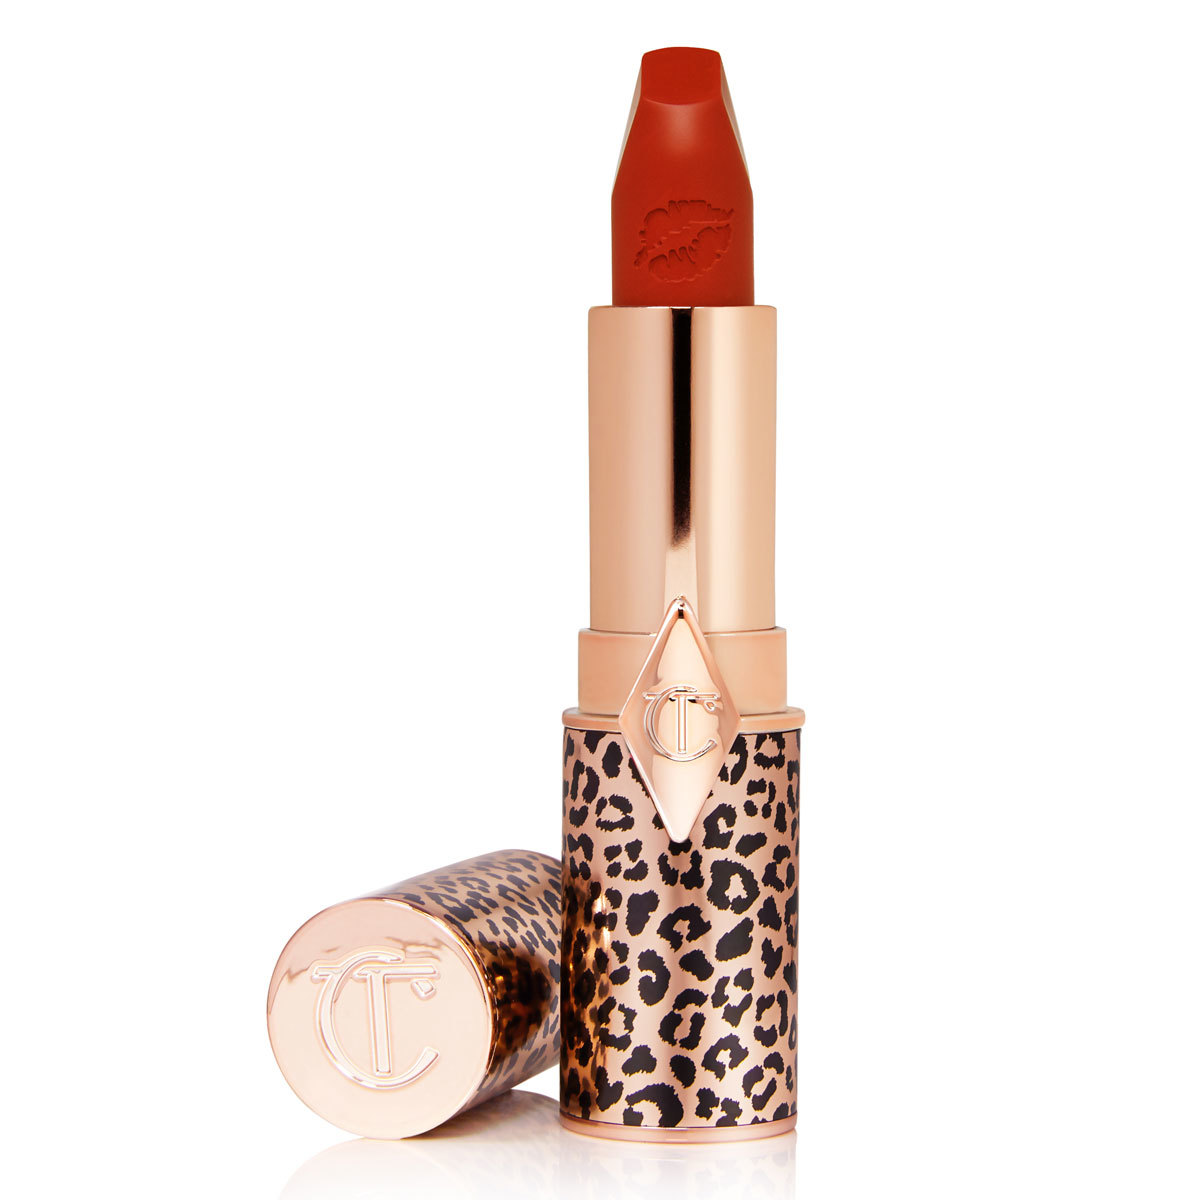 Barra de labios Hot Lips 2 Red Hot Susan, de Charlotte Tilbury (35...